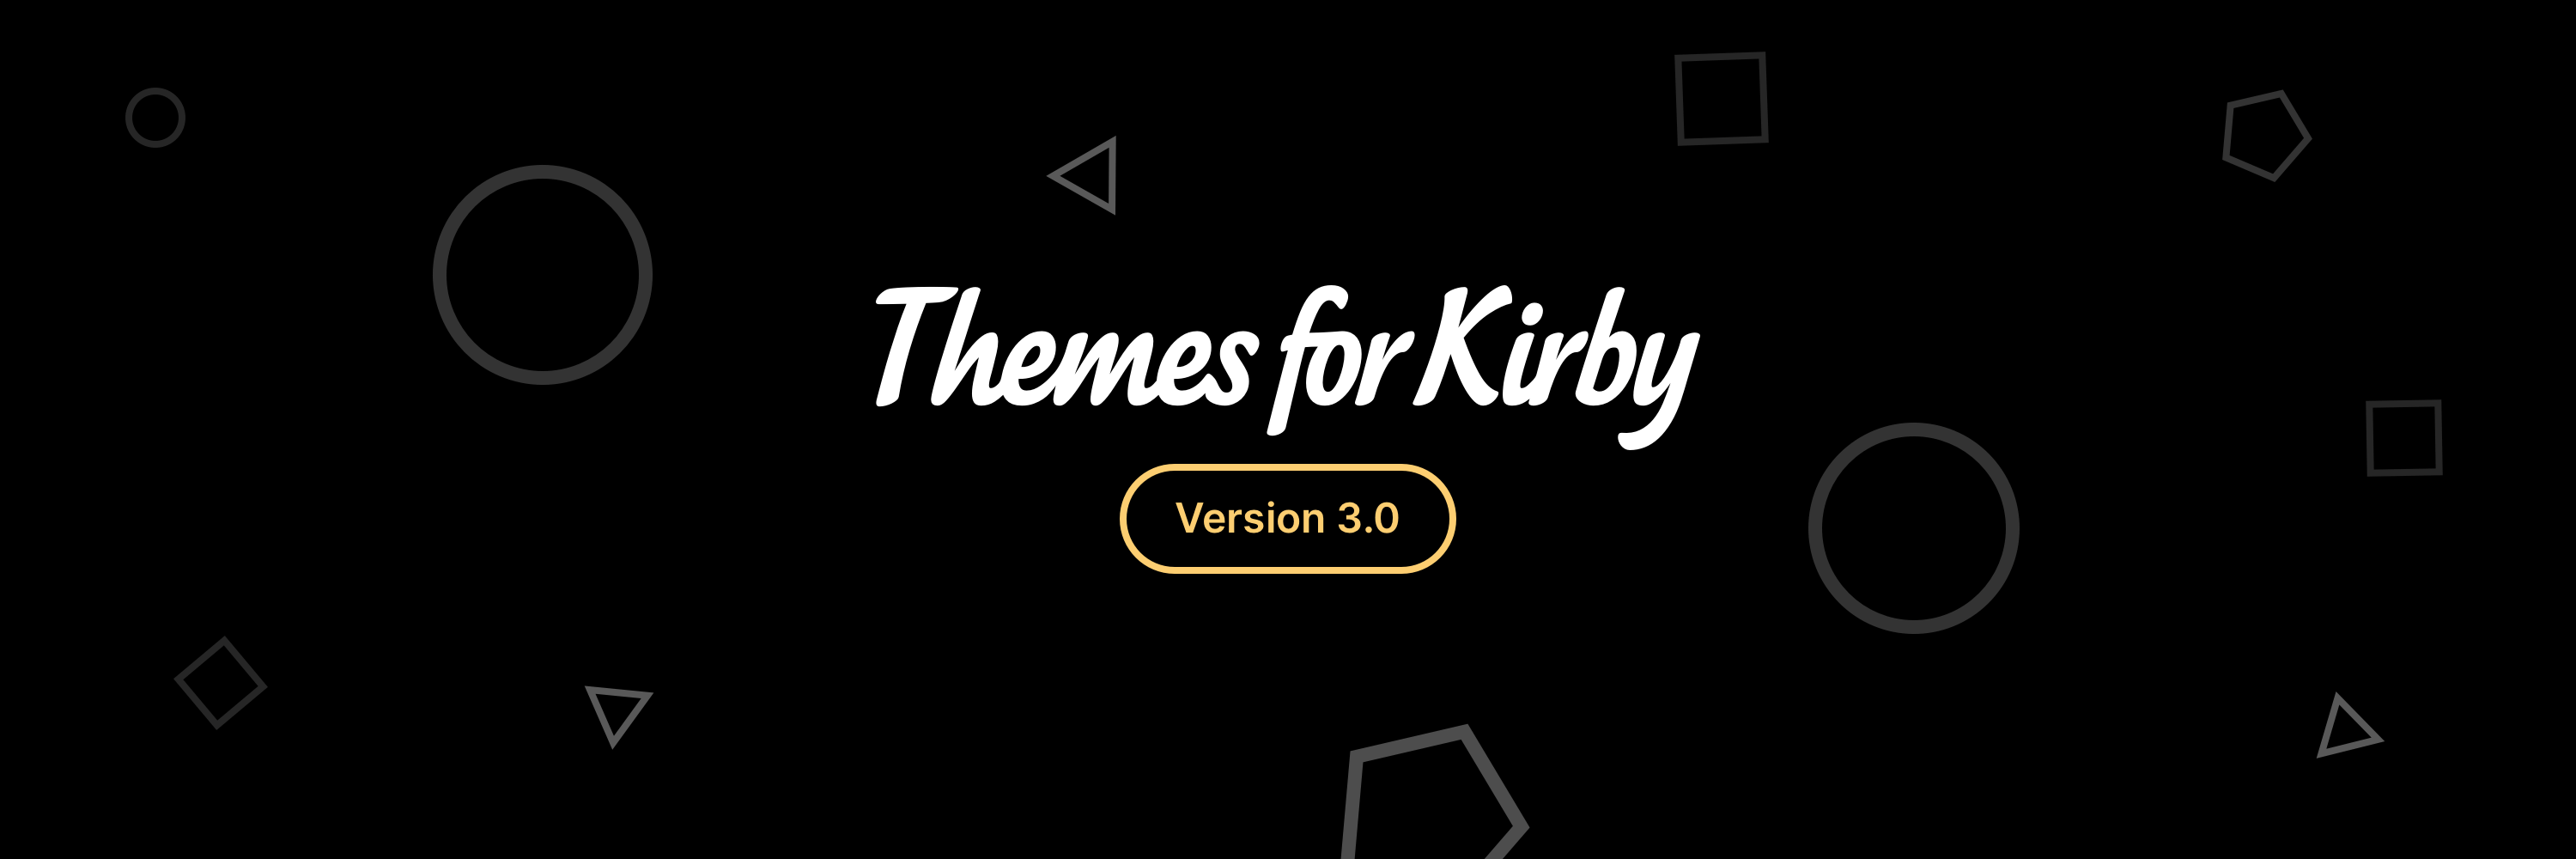 Themes for Kirby 3.0